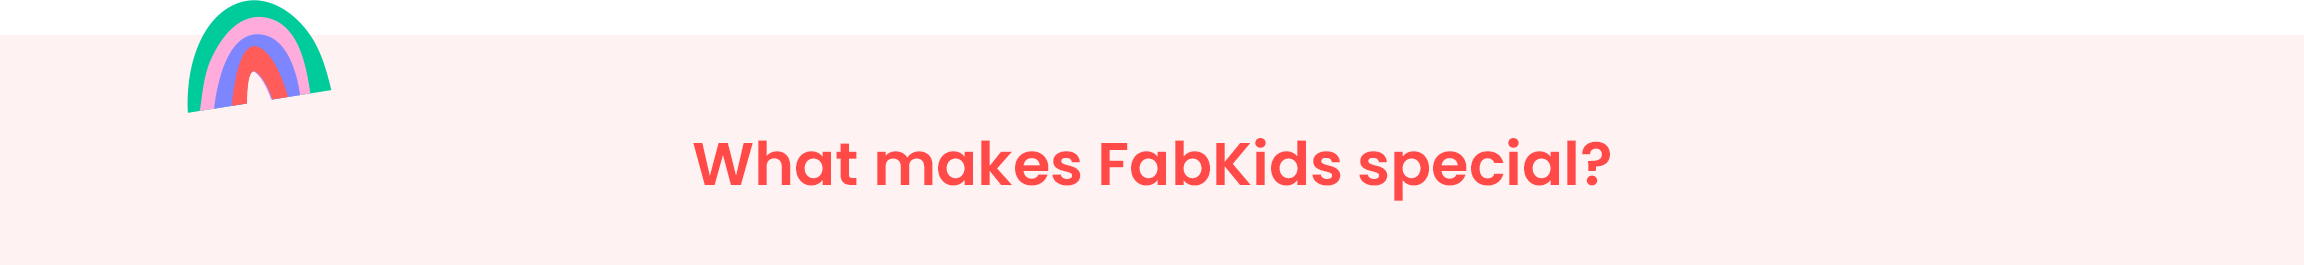 What makes FabKids special